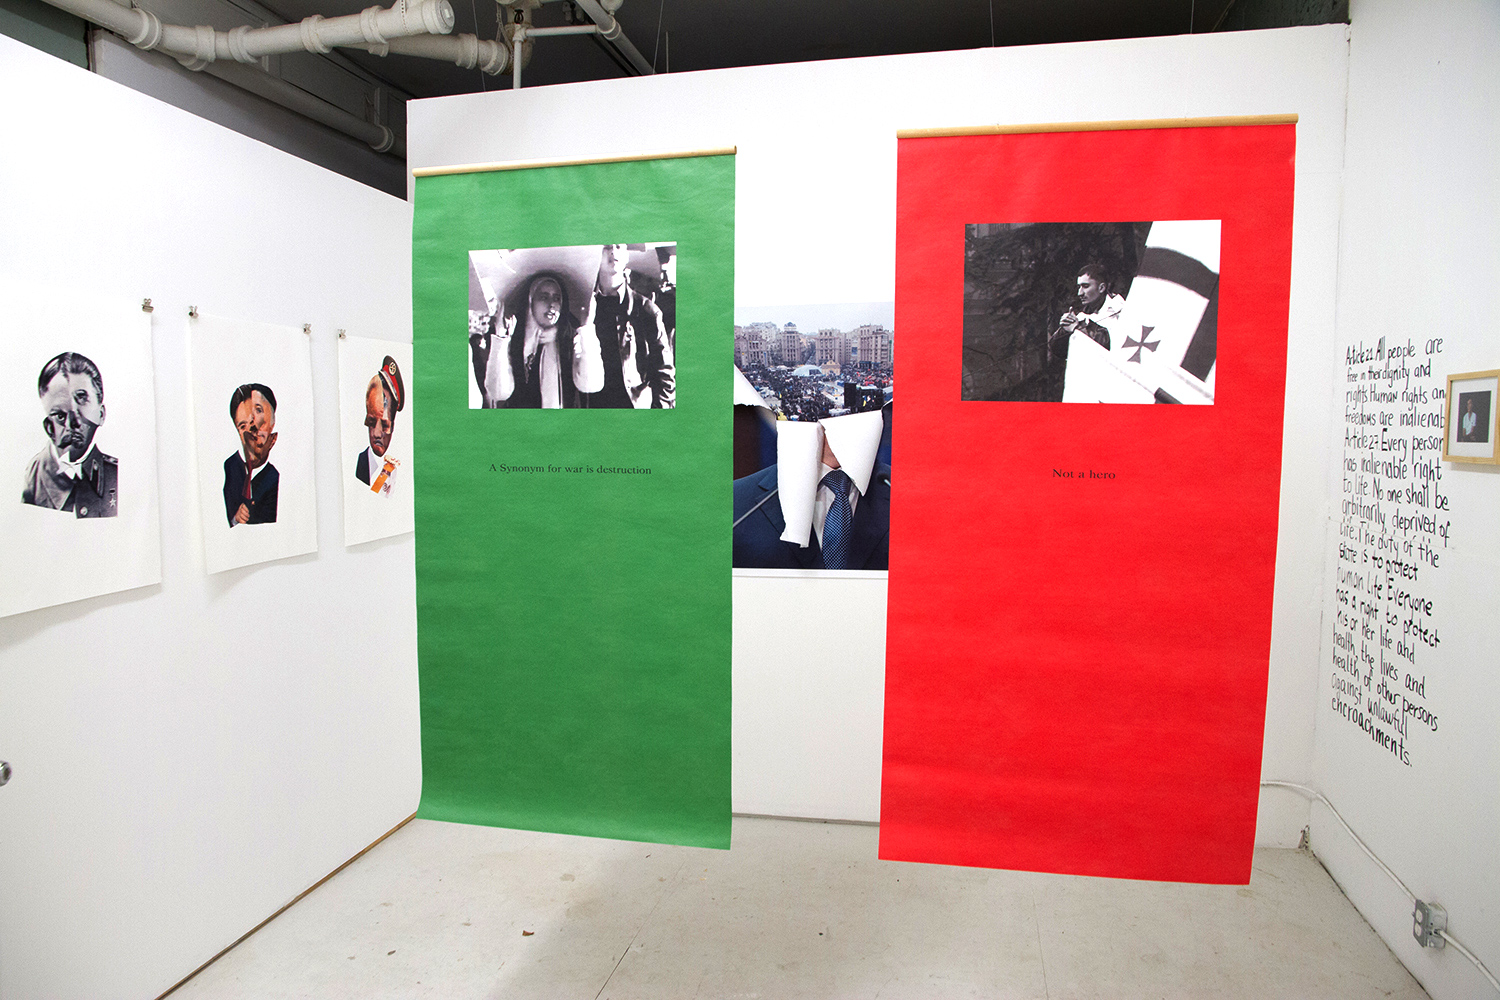 Everything moves, everything passes and there is no end, 2014, installation view